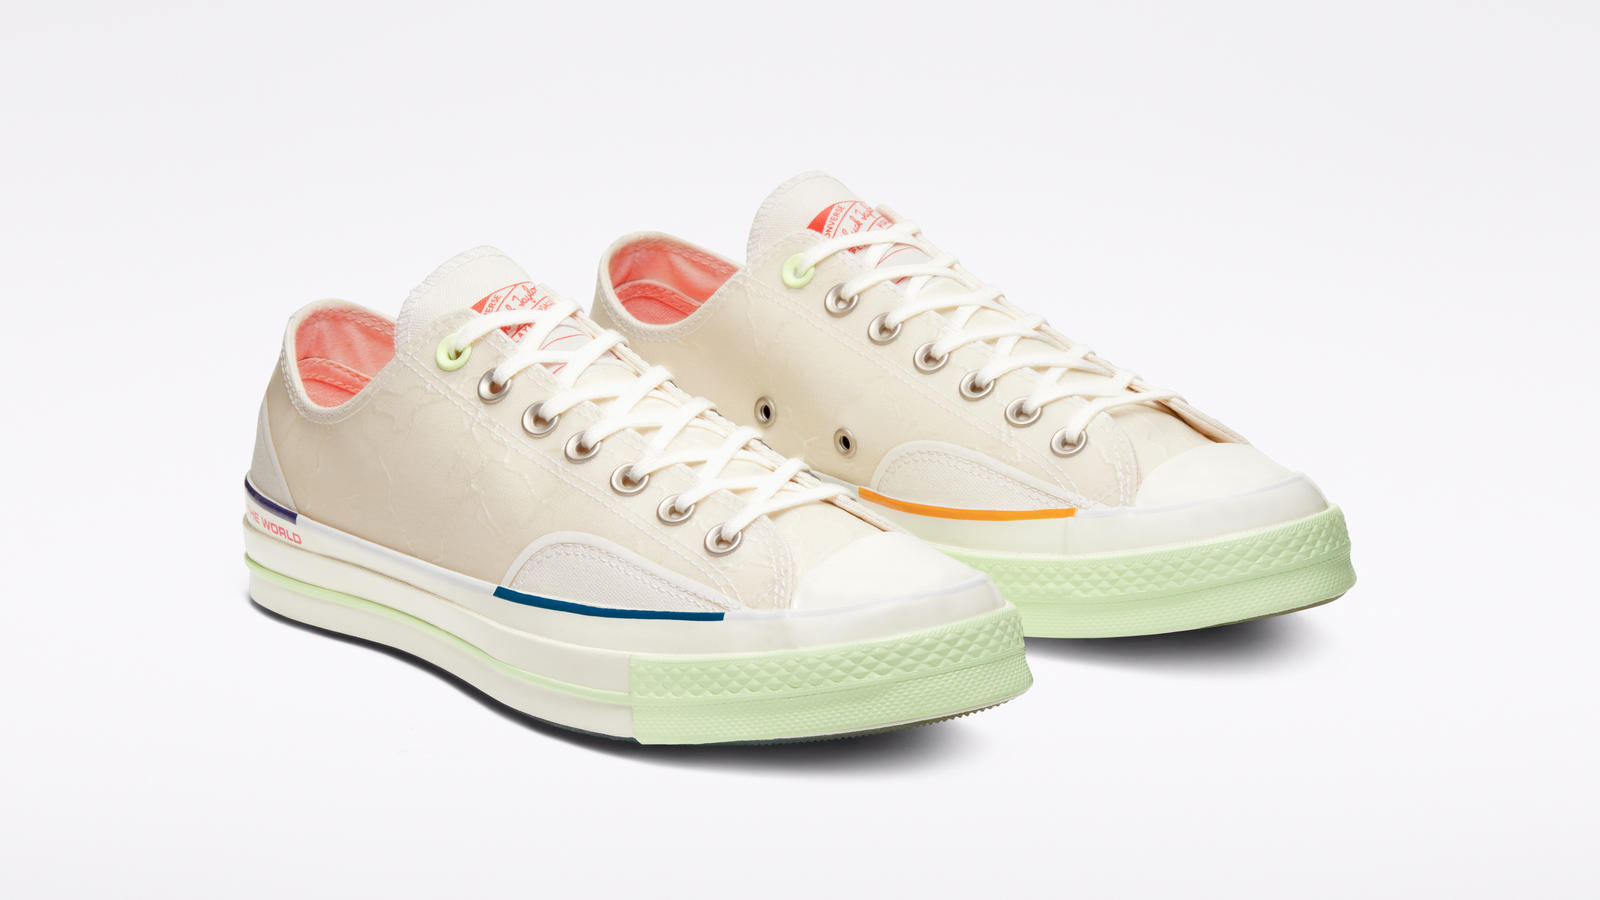 Nike Converse Pigalle 2019 Collection Update 8